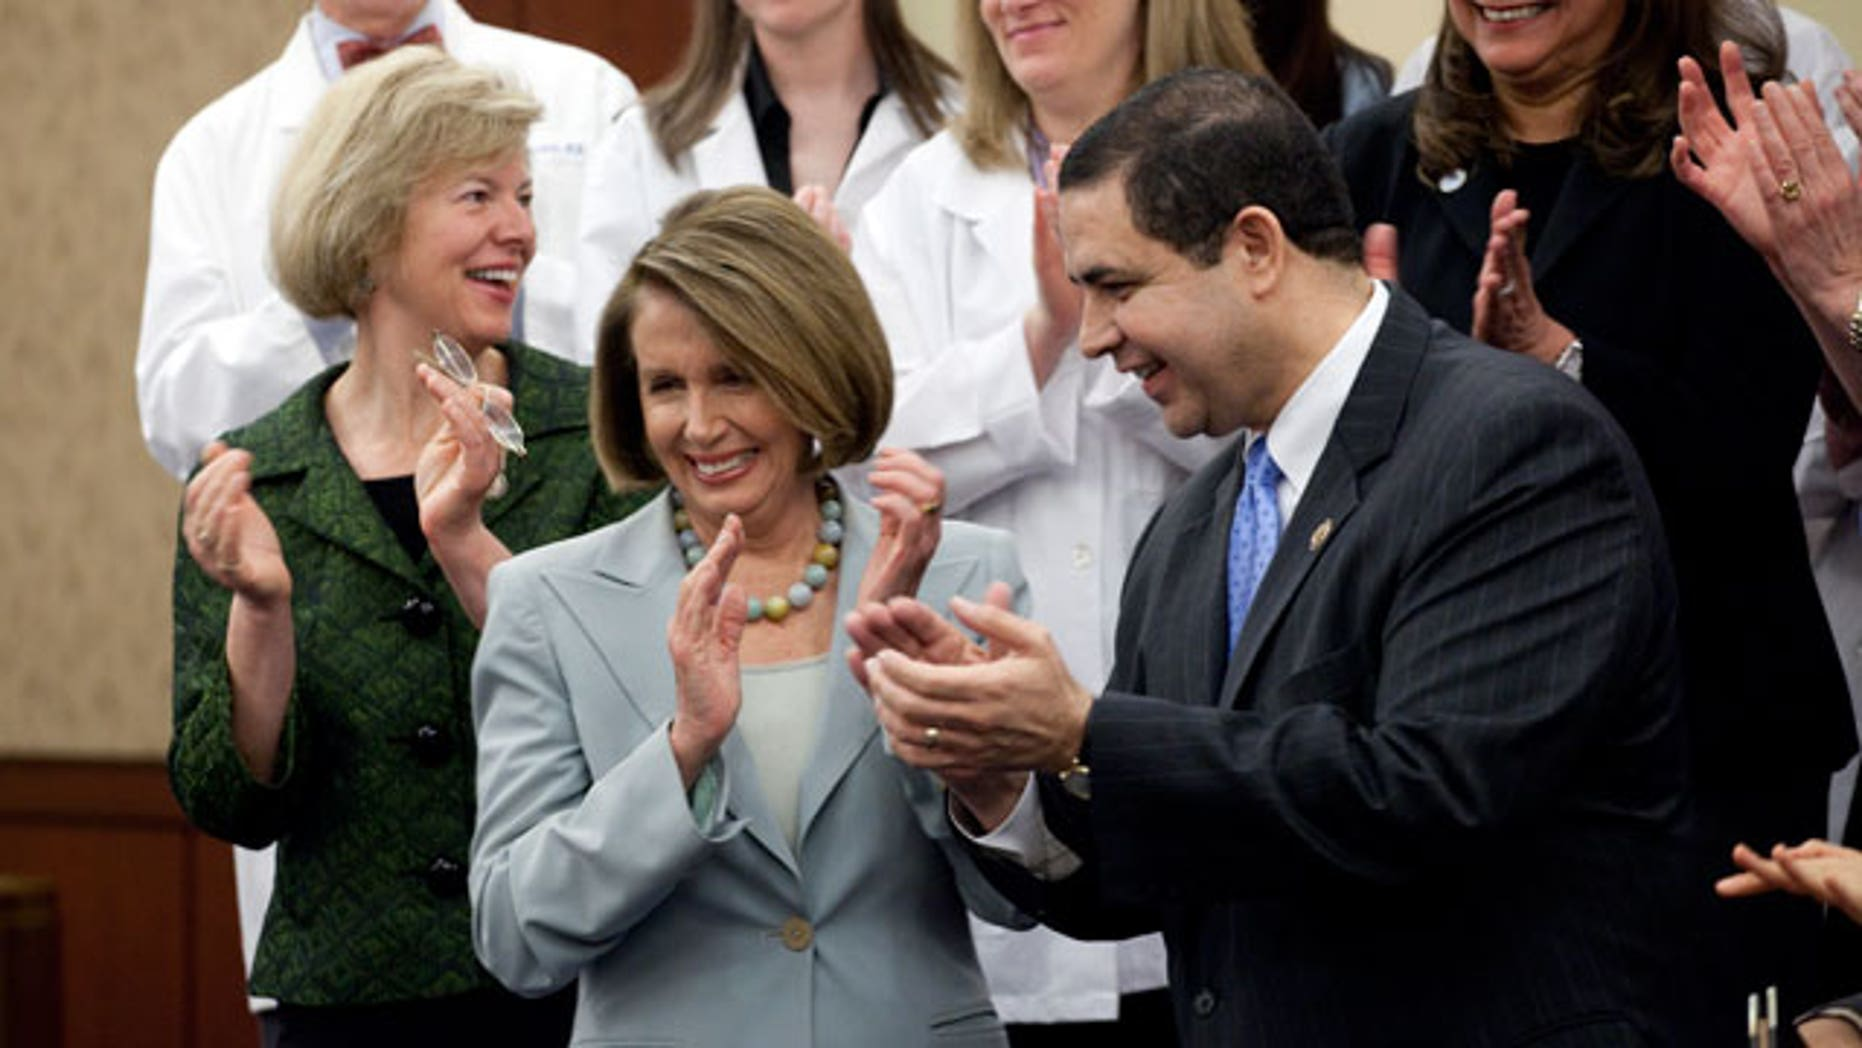 Rep. Tammy Baldwin, D-Wisc., Democratic Minority Leader, Nancy Pelosi, D-Calif., and Rep. Henry Cuellar, D-Tex., at a ceremony marking the one year anniversary of the passage of the Health Care Act on Capitol Hill in Washington on Thursday, March 17, 2011. (AP)